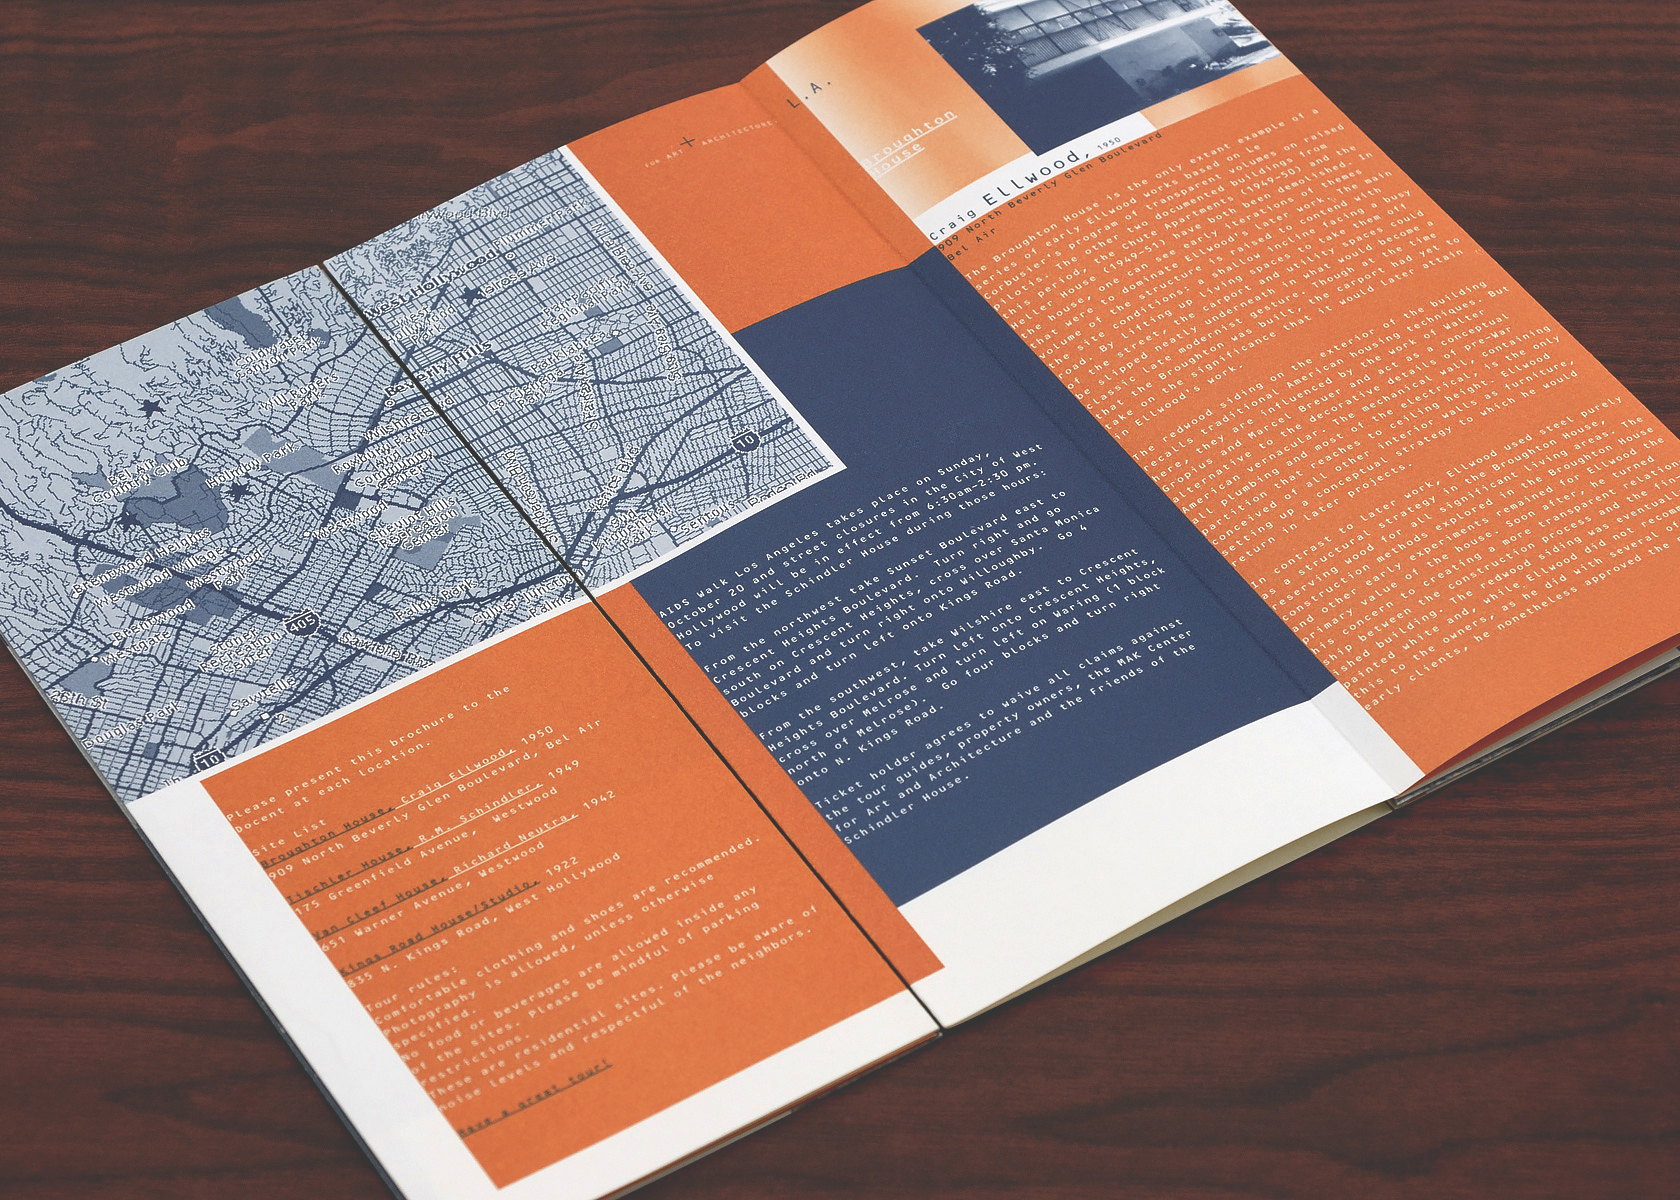 MAK_Center_Brochure_03_TRT